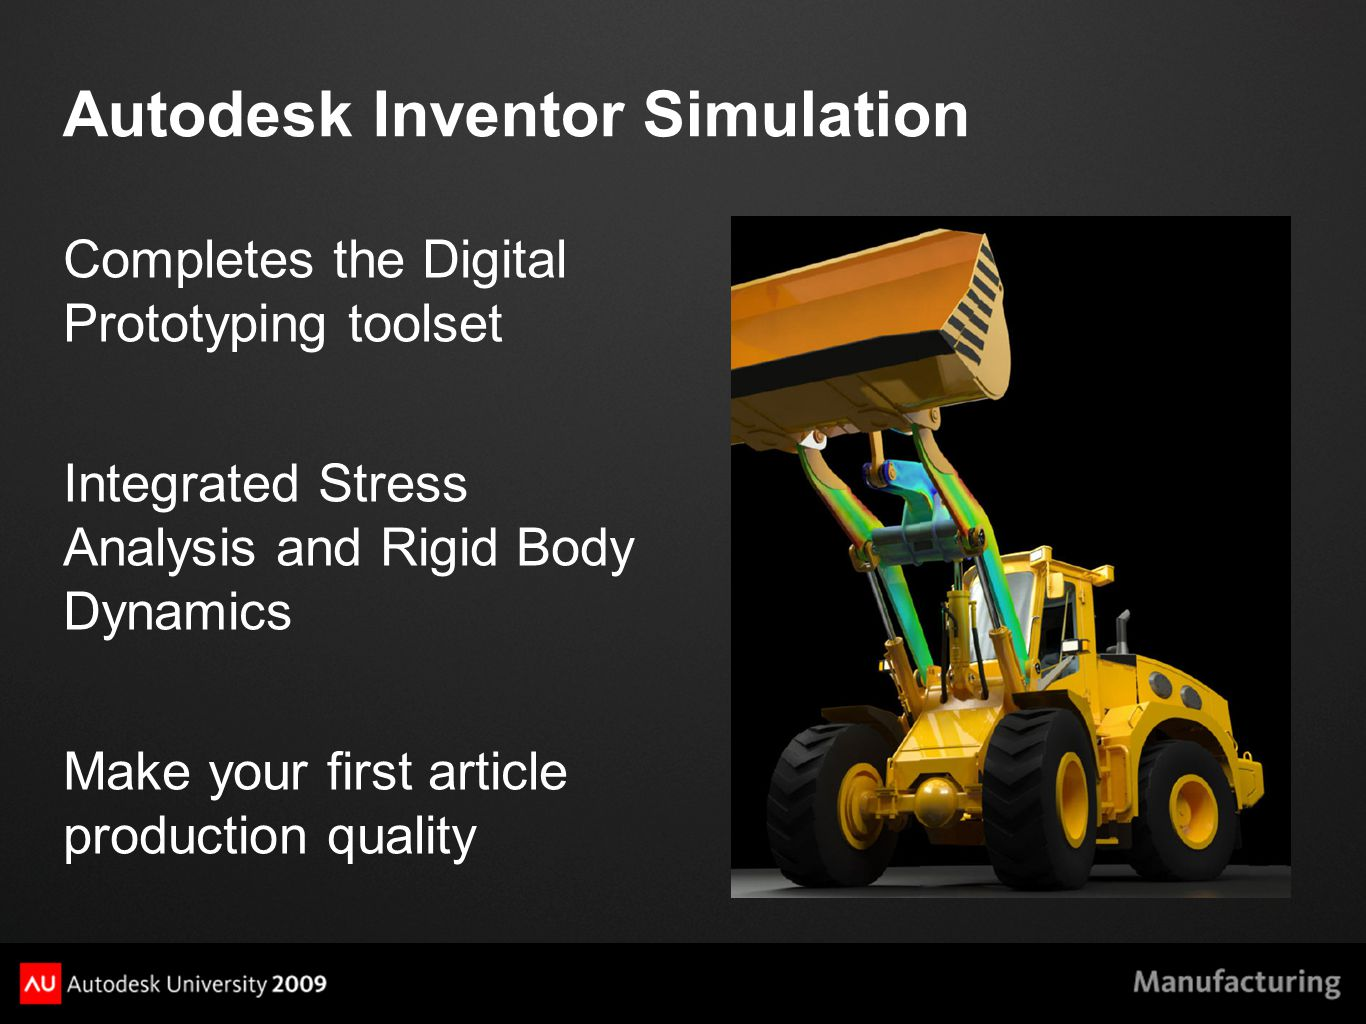 Autodesk Inventor Simulation Completes the Digital Prototyping toolset Integrated Stress Analysis and Rigid Body Dynamics Make your first article production quality